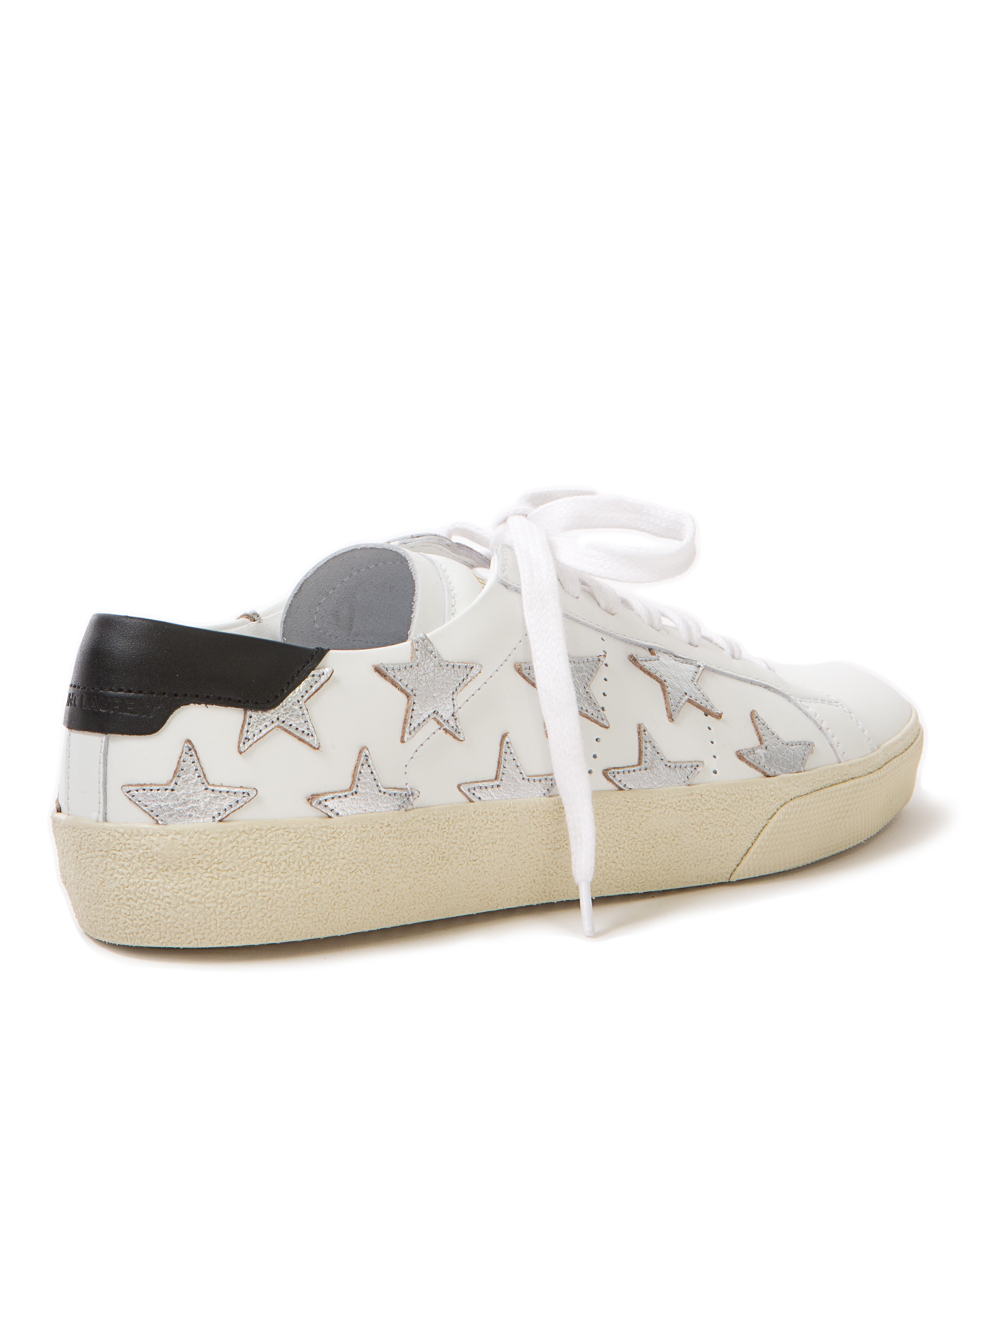 saint laurent star sneakers in gray lyst. Black Bedroom Furniture Sets. Home Design Ideas